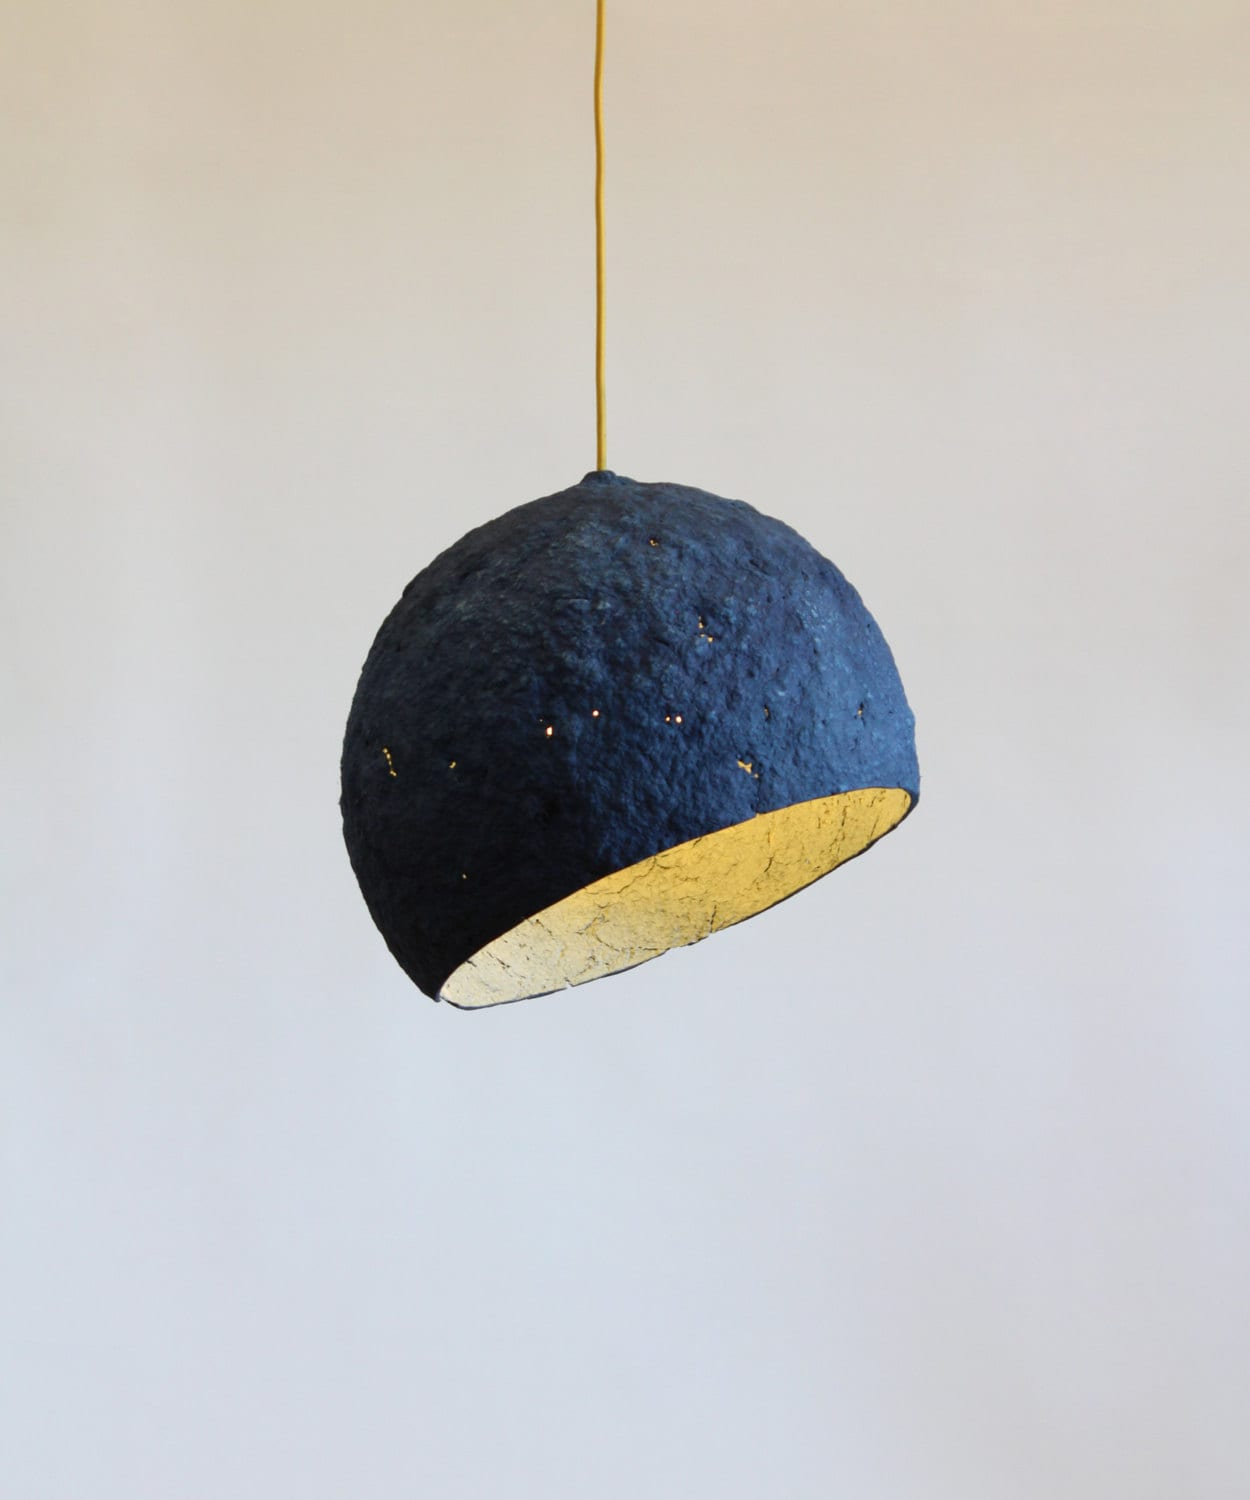 Paper mache lamp pluto lamp pendant light hanging lamp for How to make paper mache lamps